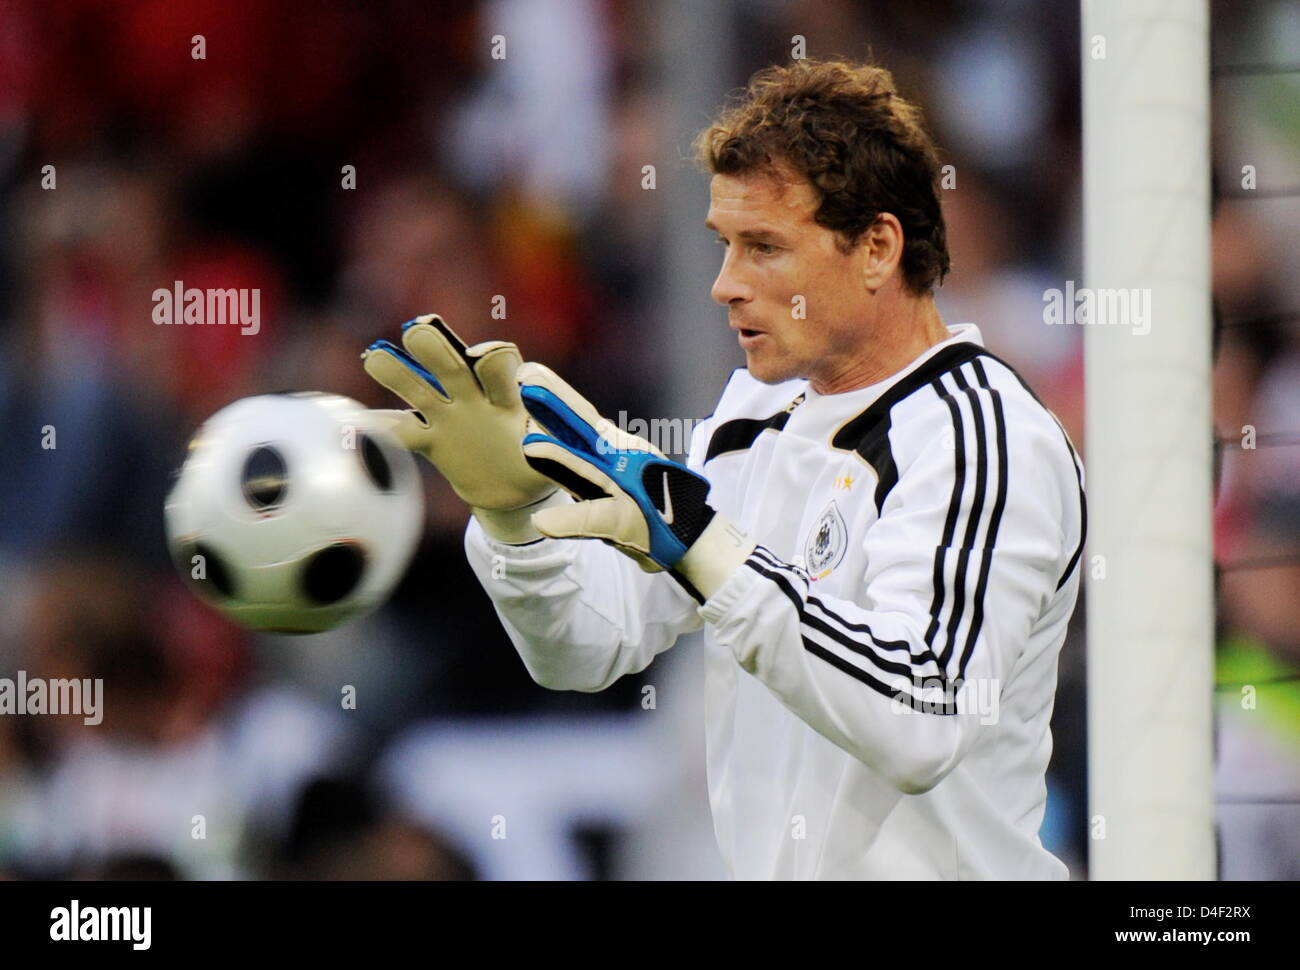 Goalkeeper Jens Lehmann of Germany catches a ball prior the EURO 2008 preliminary round group B match in Woerthersee - Stock Image